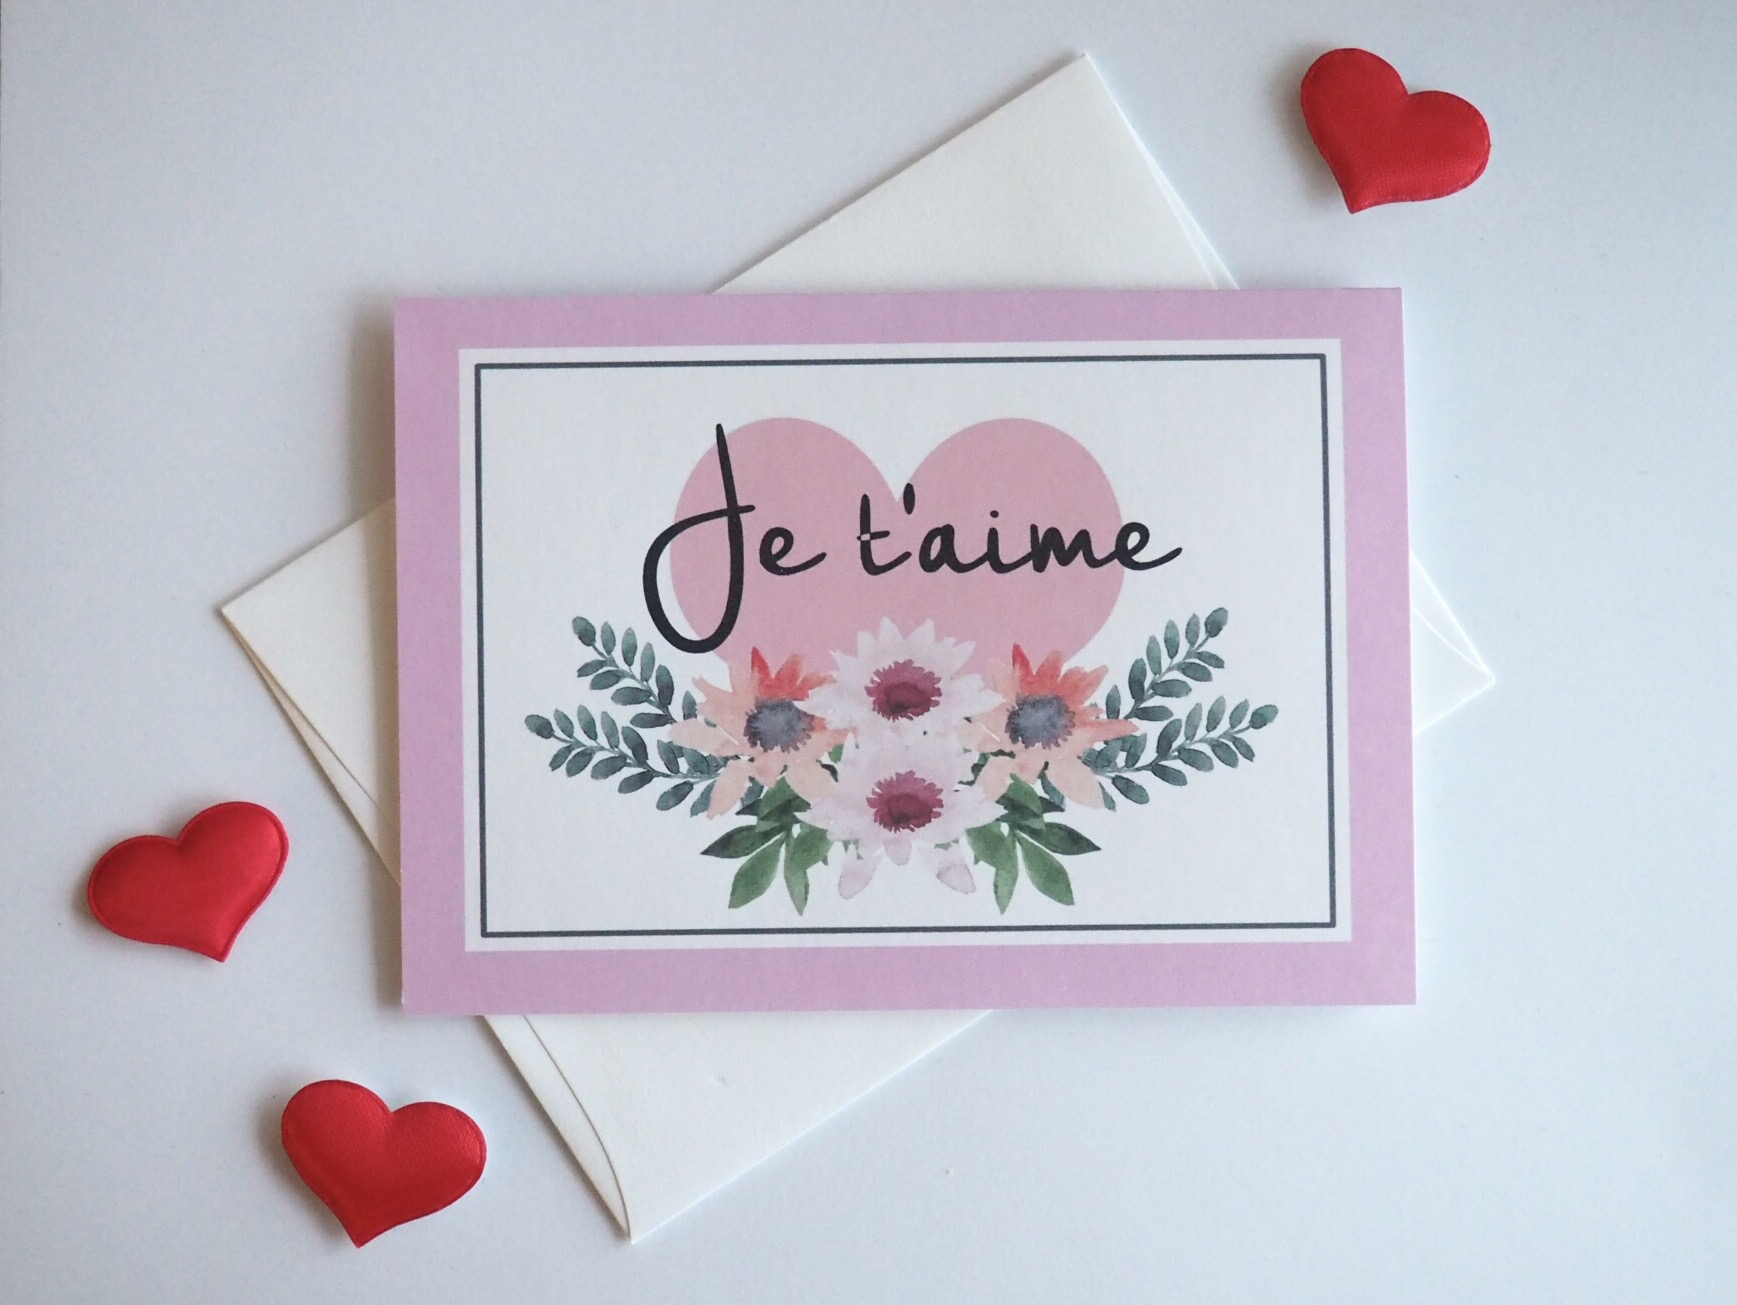 Love card - Je t'aime